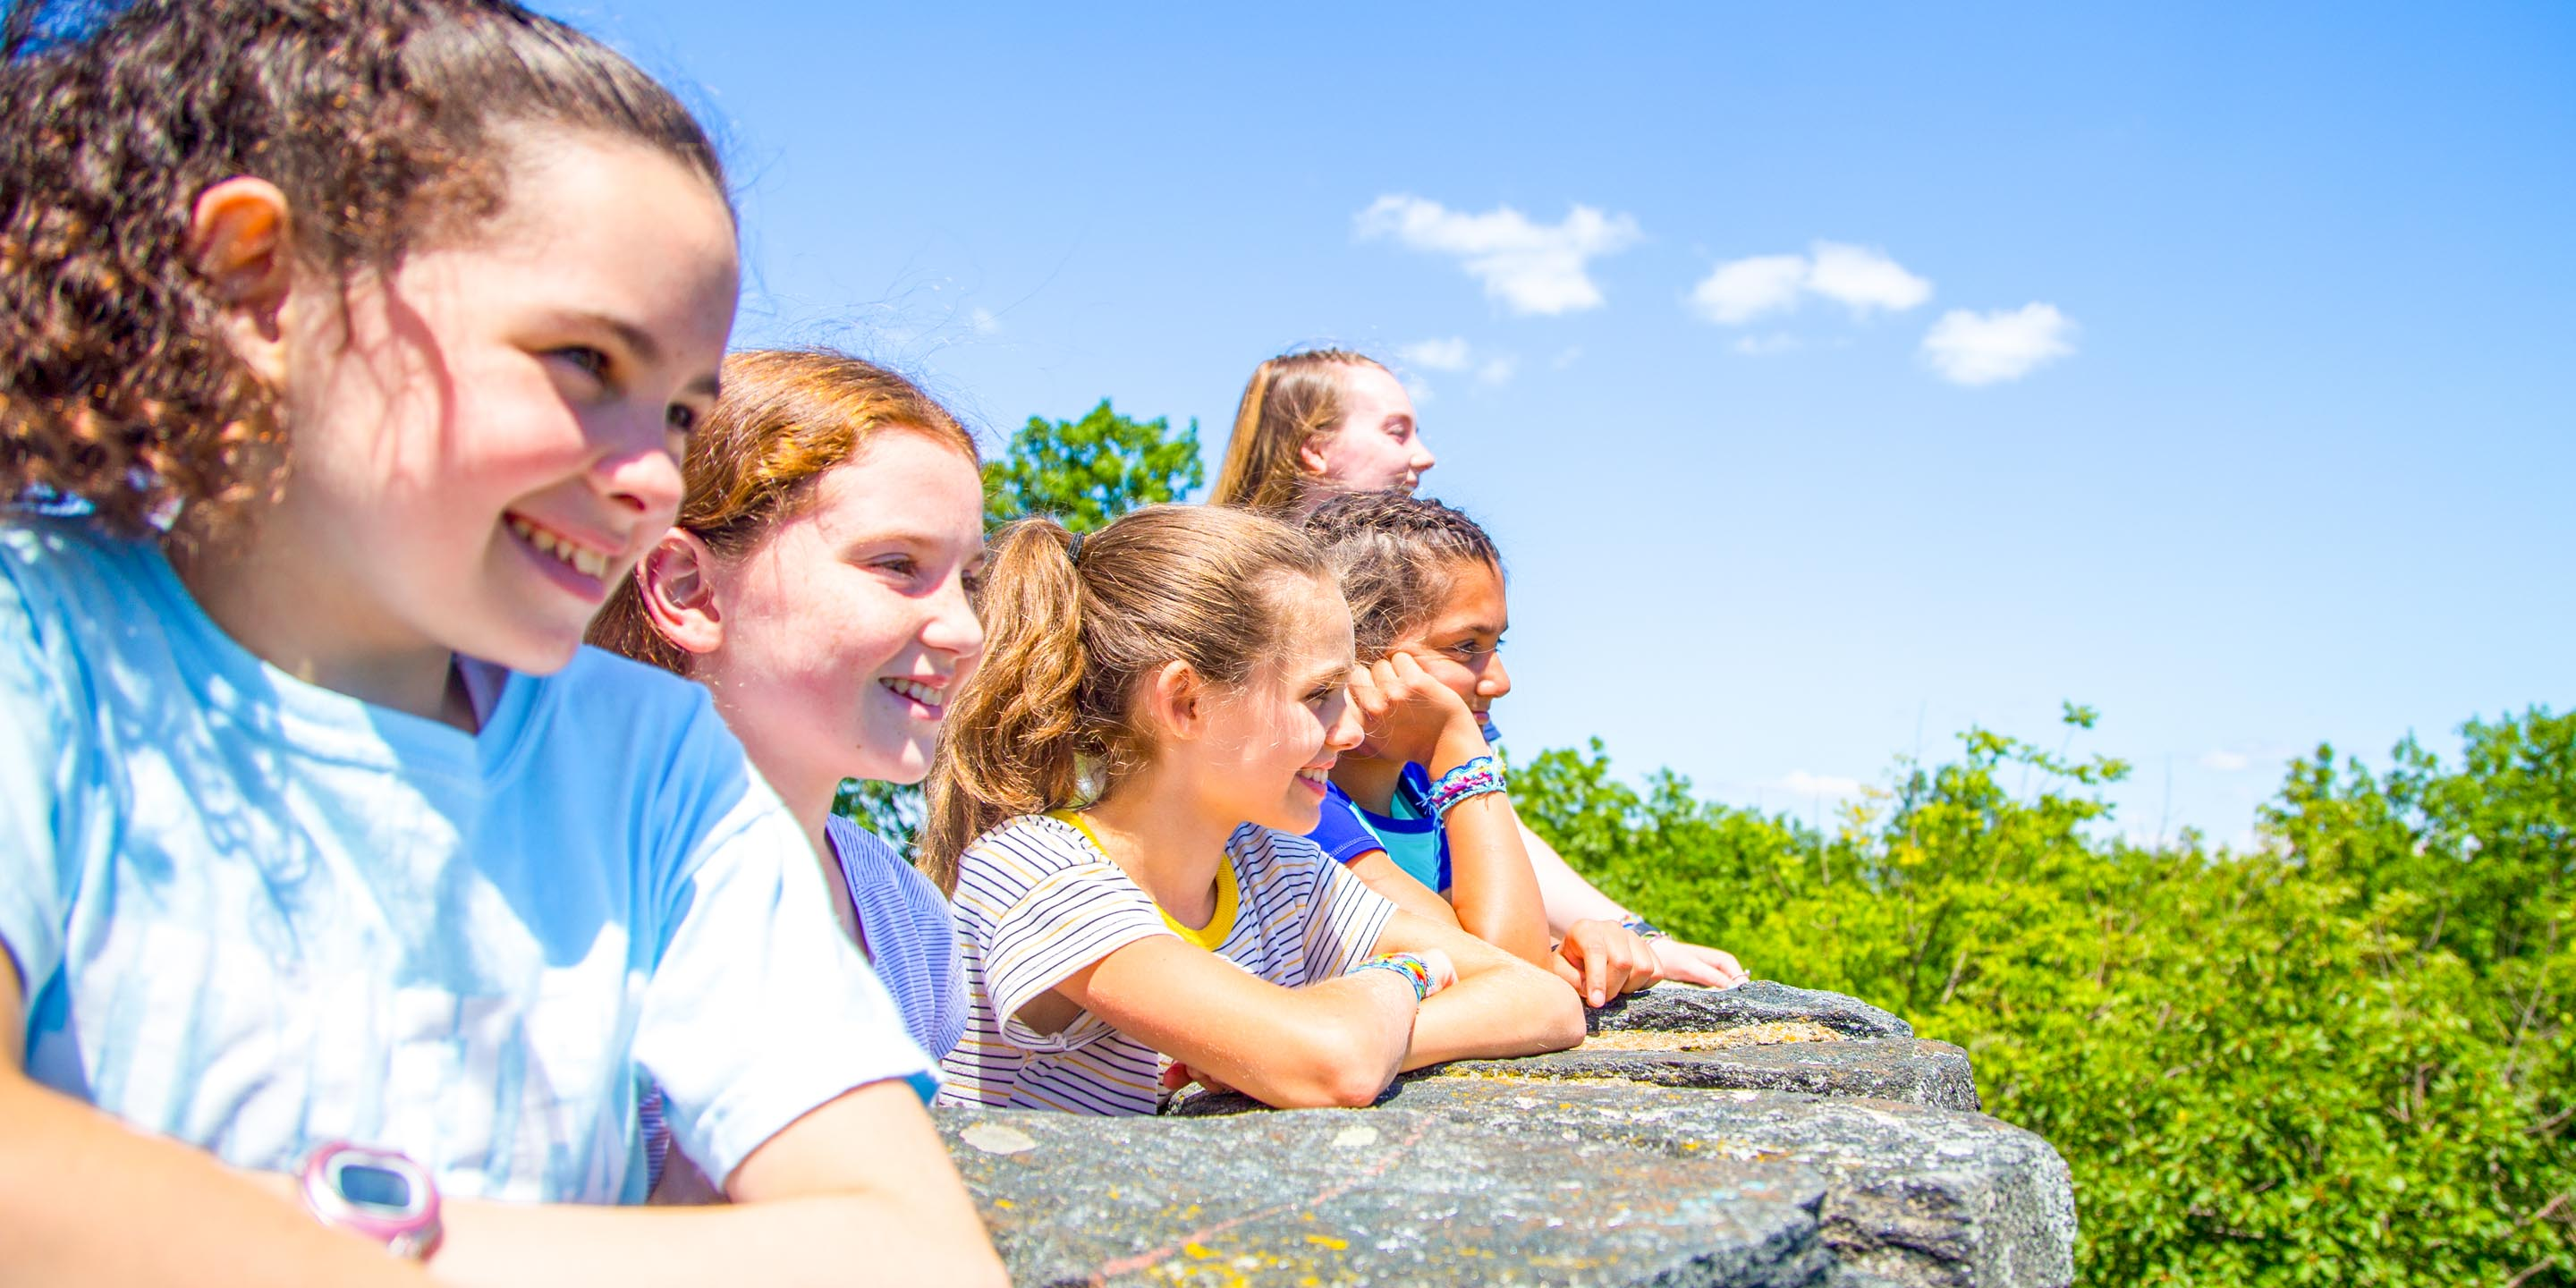 Smiling campers appreciate view from top of hike